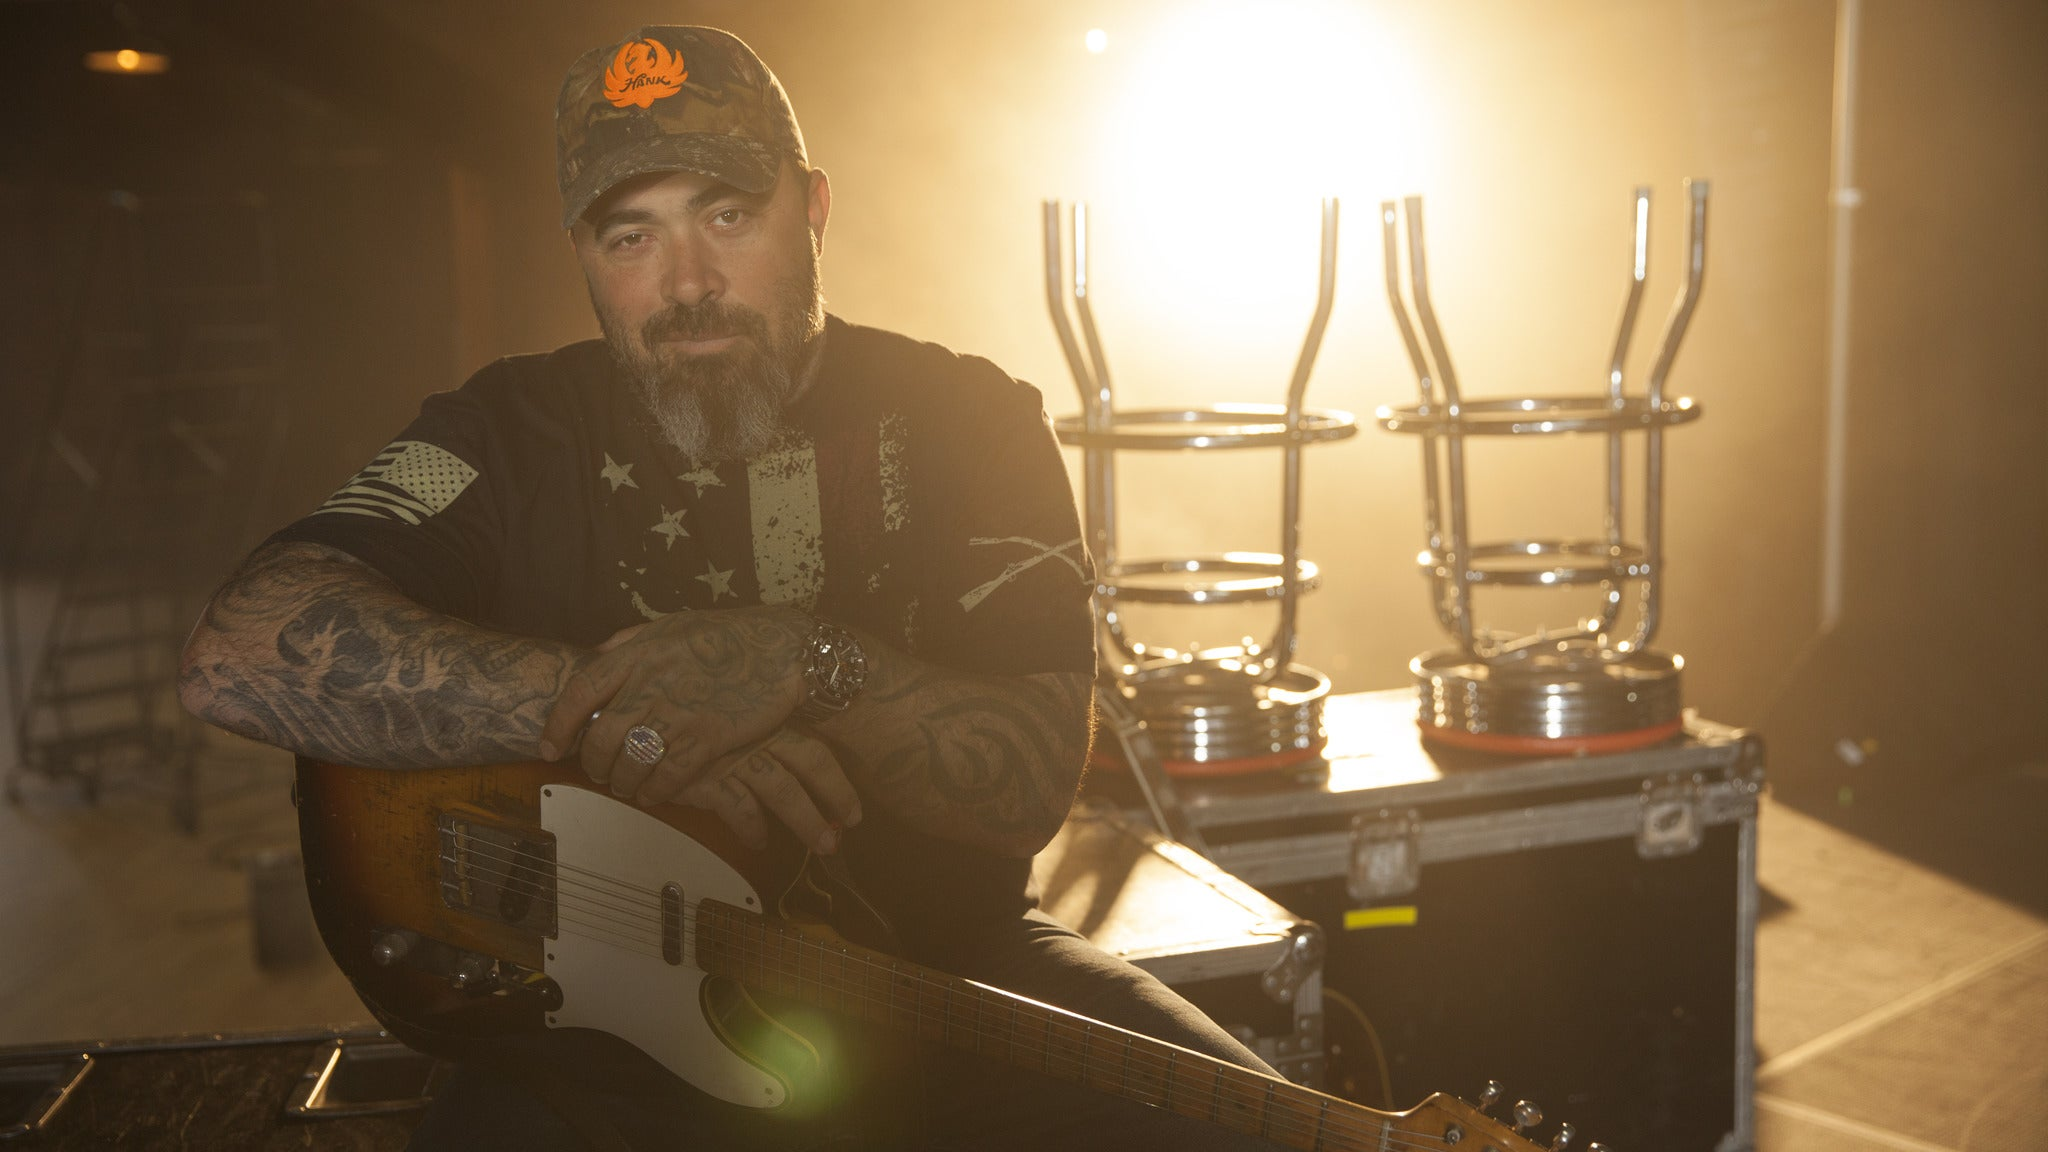 Aaron Lewis at Memorial Auditorium